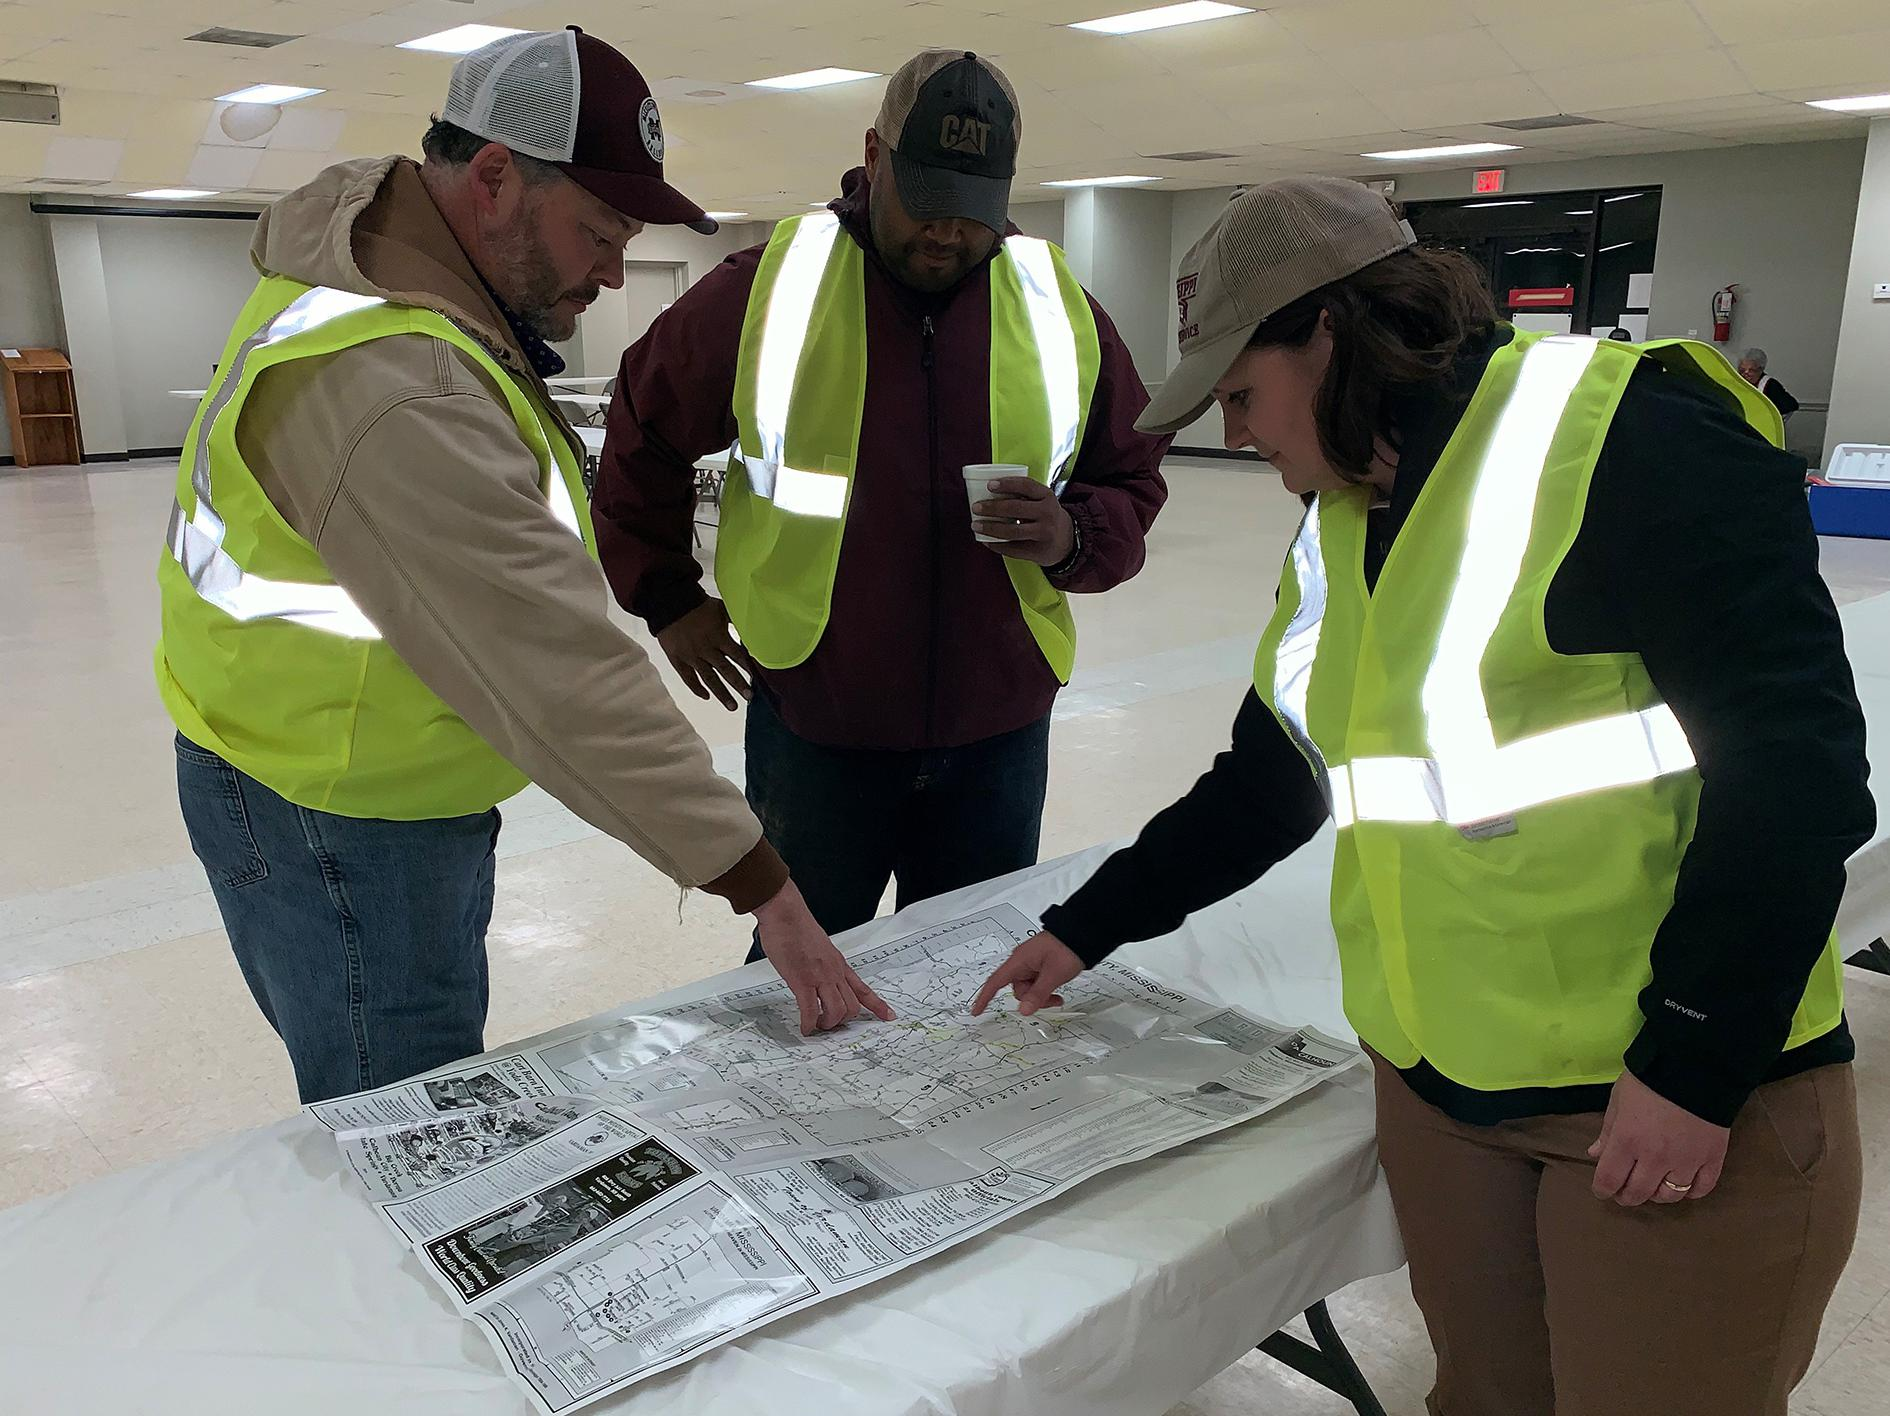 Two men and a woman, all wearing baseball caps and reflective yellow vests, look at a roadmap spread out on a table in a large, empty, well-lit room.